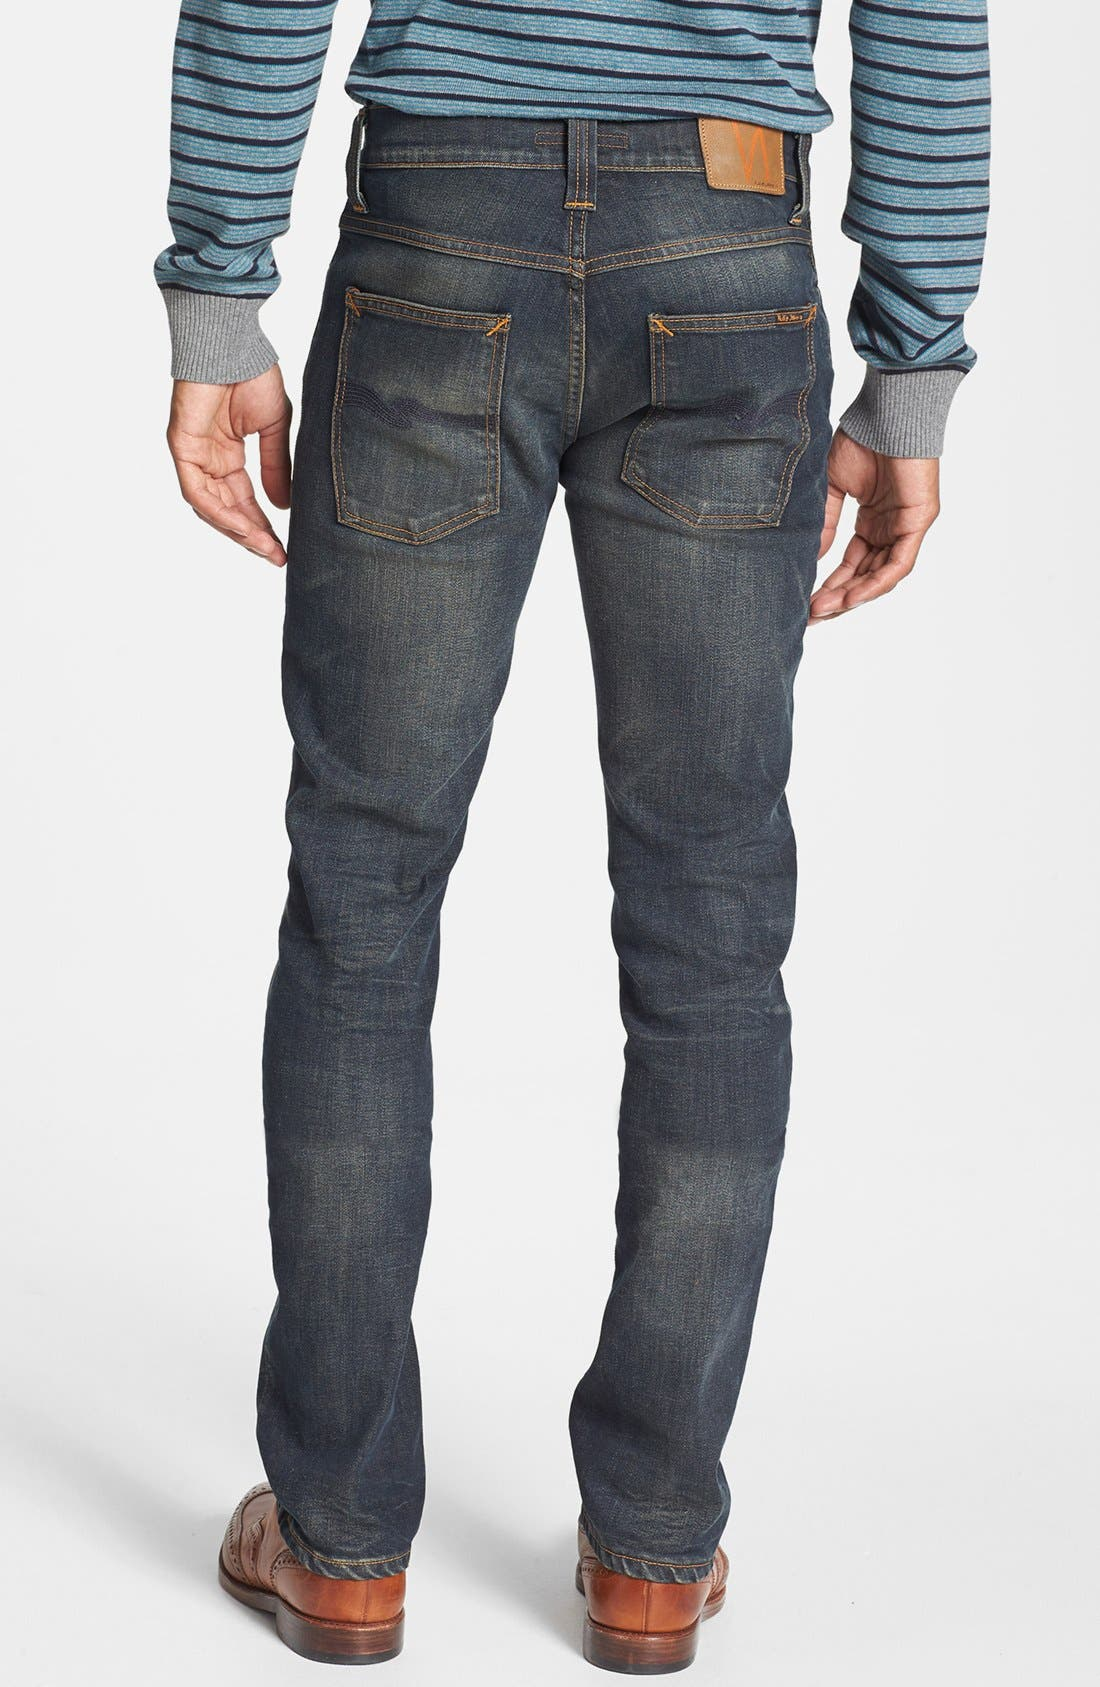 Alternate Image 1 Selected - Nudie Jeans 'Thin Finn' Skinny Fit Jeans (Organic Worn In Pepper)